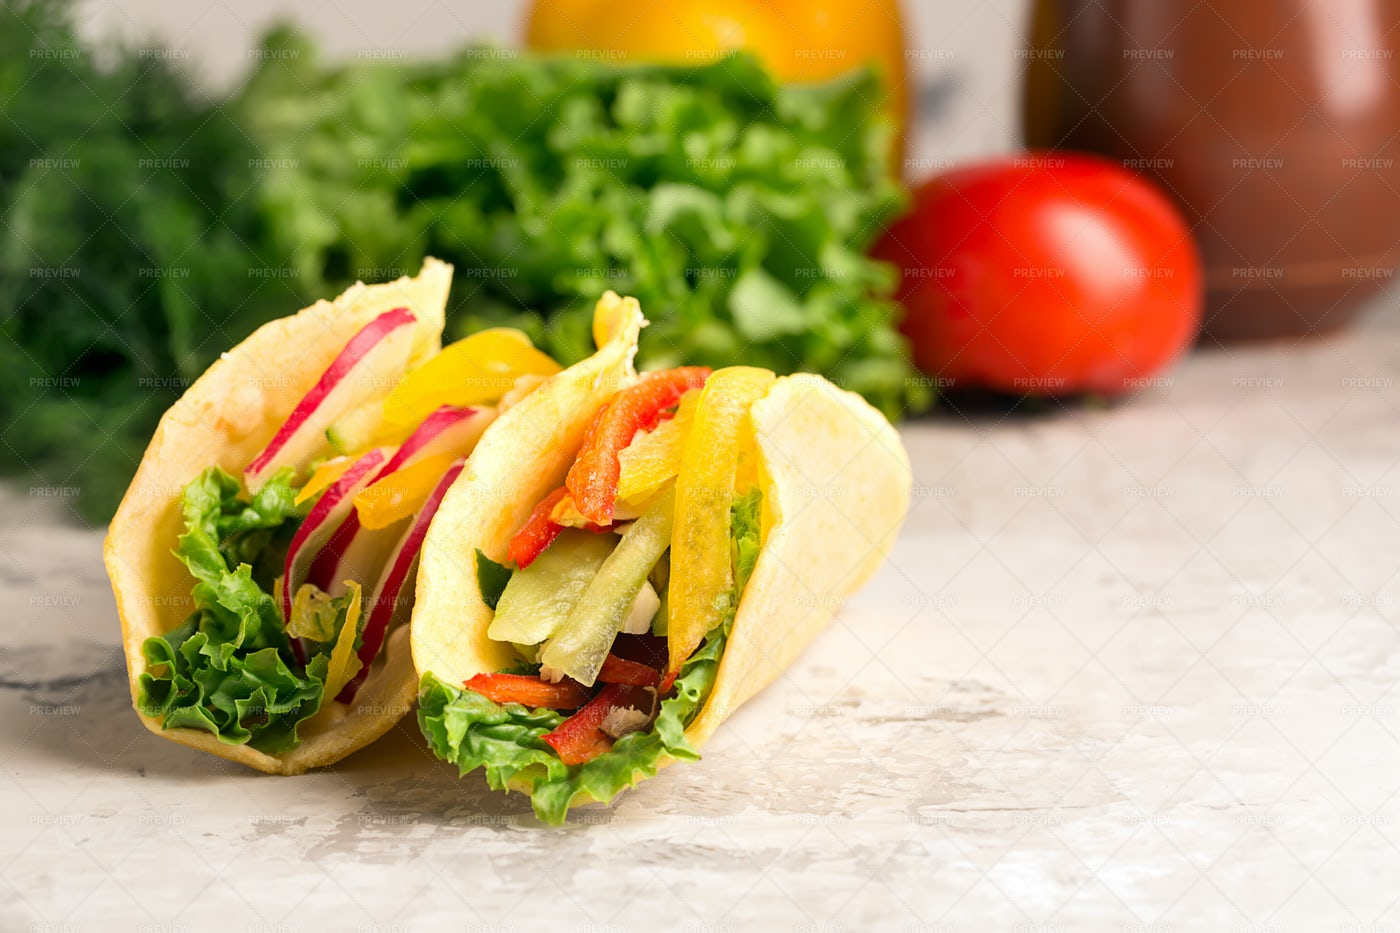 Taco With Vegetables: Stock Photos